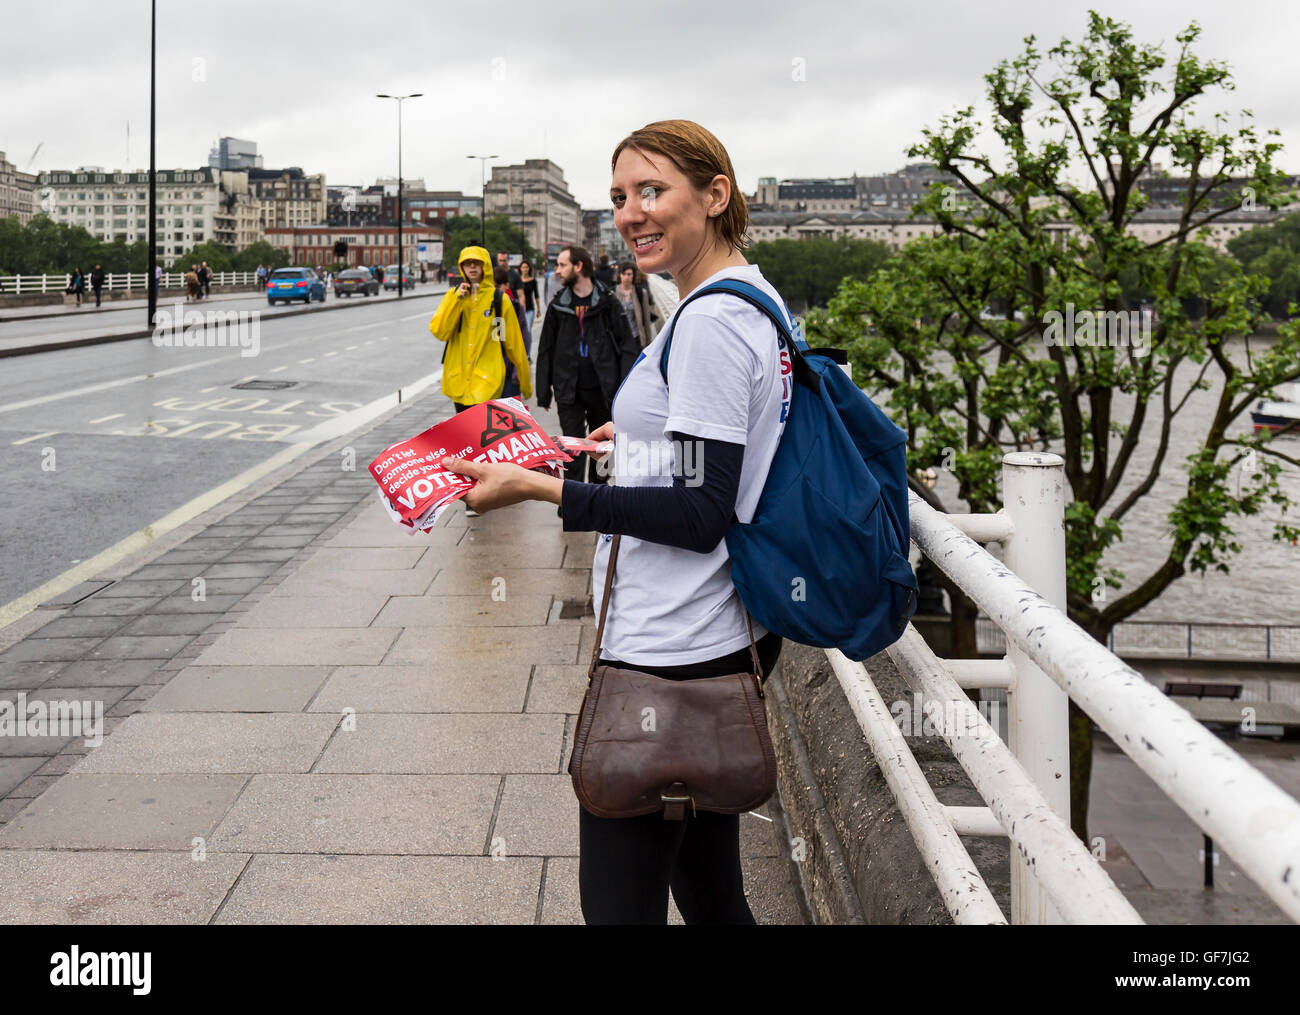 London, England - June 2016. A woman handing out Pro-Remain brochures to pedestrians. - Stock Image